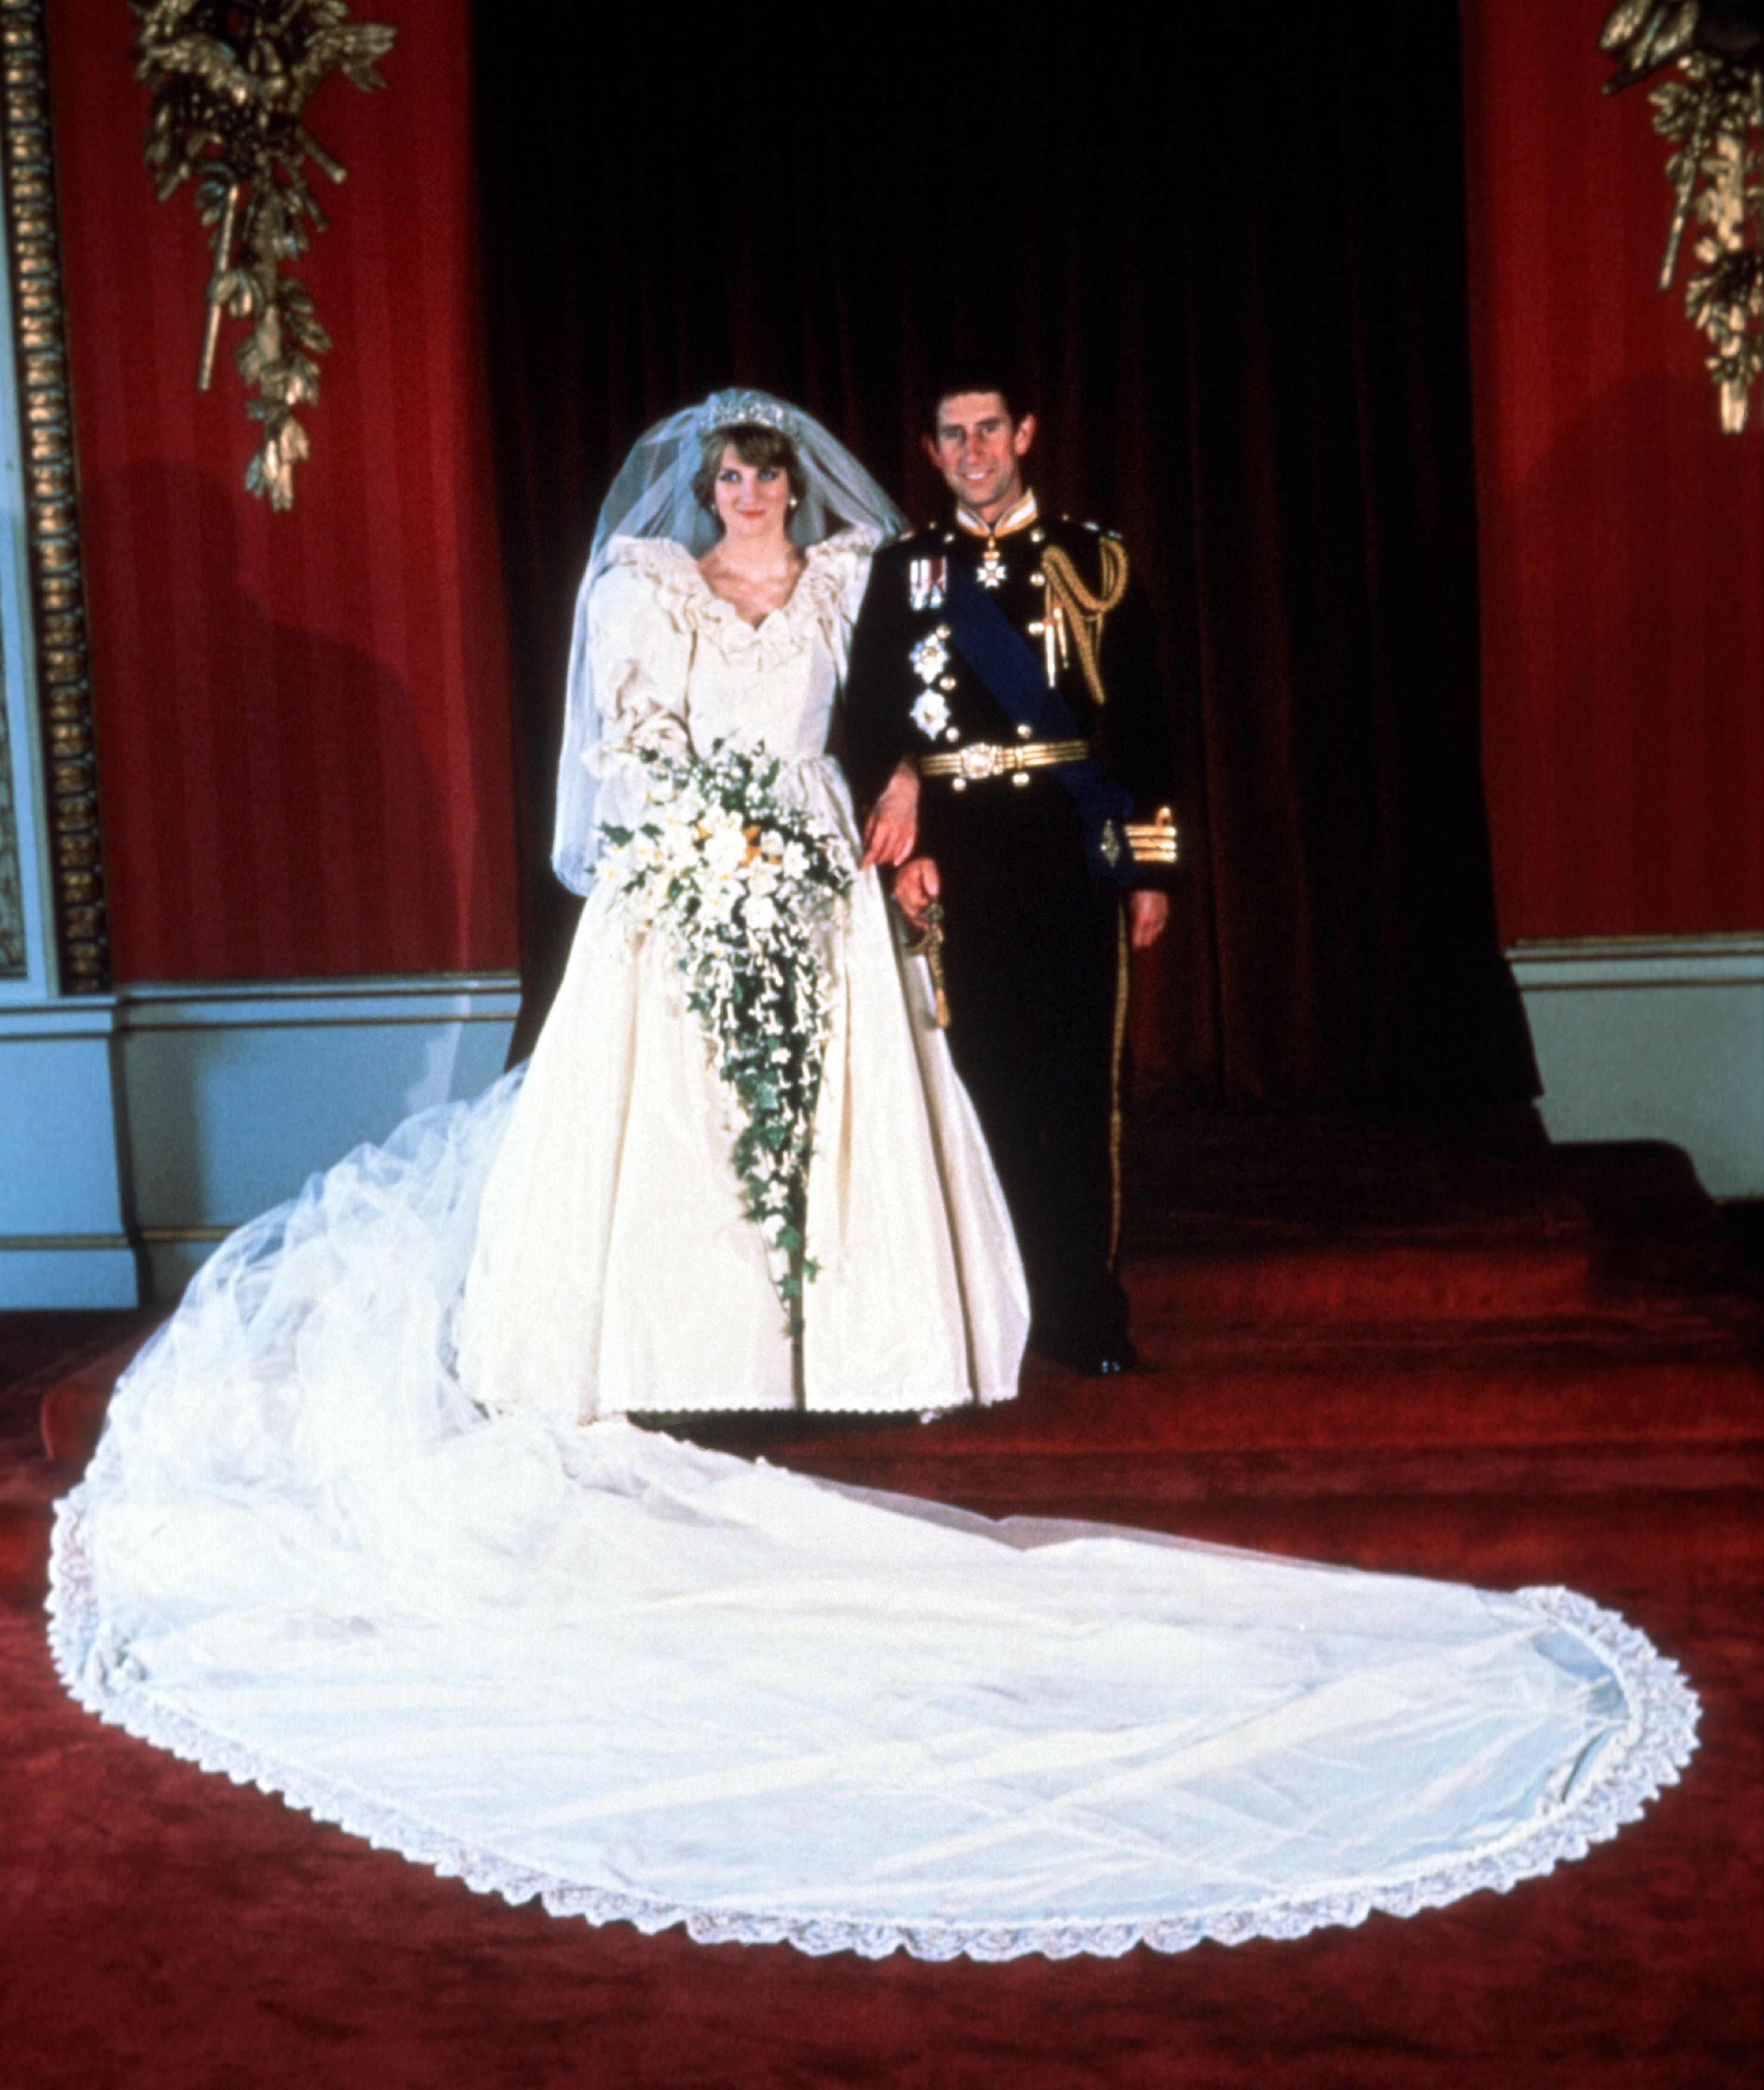 Prince Charles And Lady DianaS Wedding In 1981